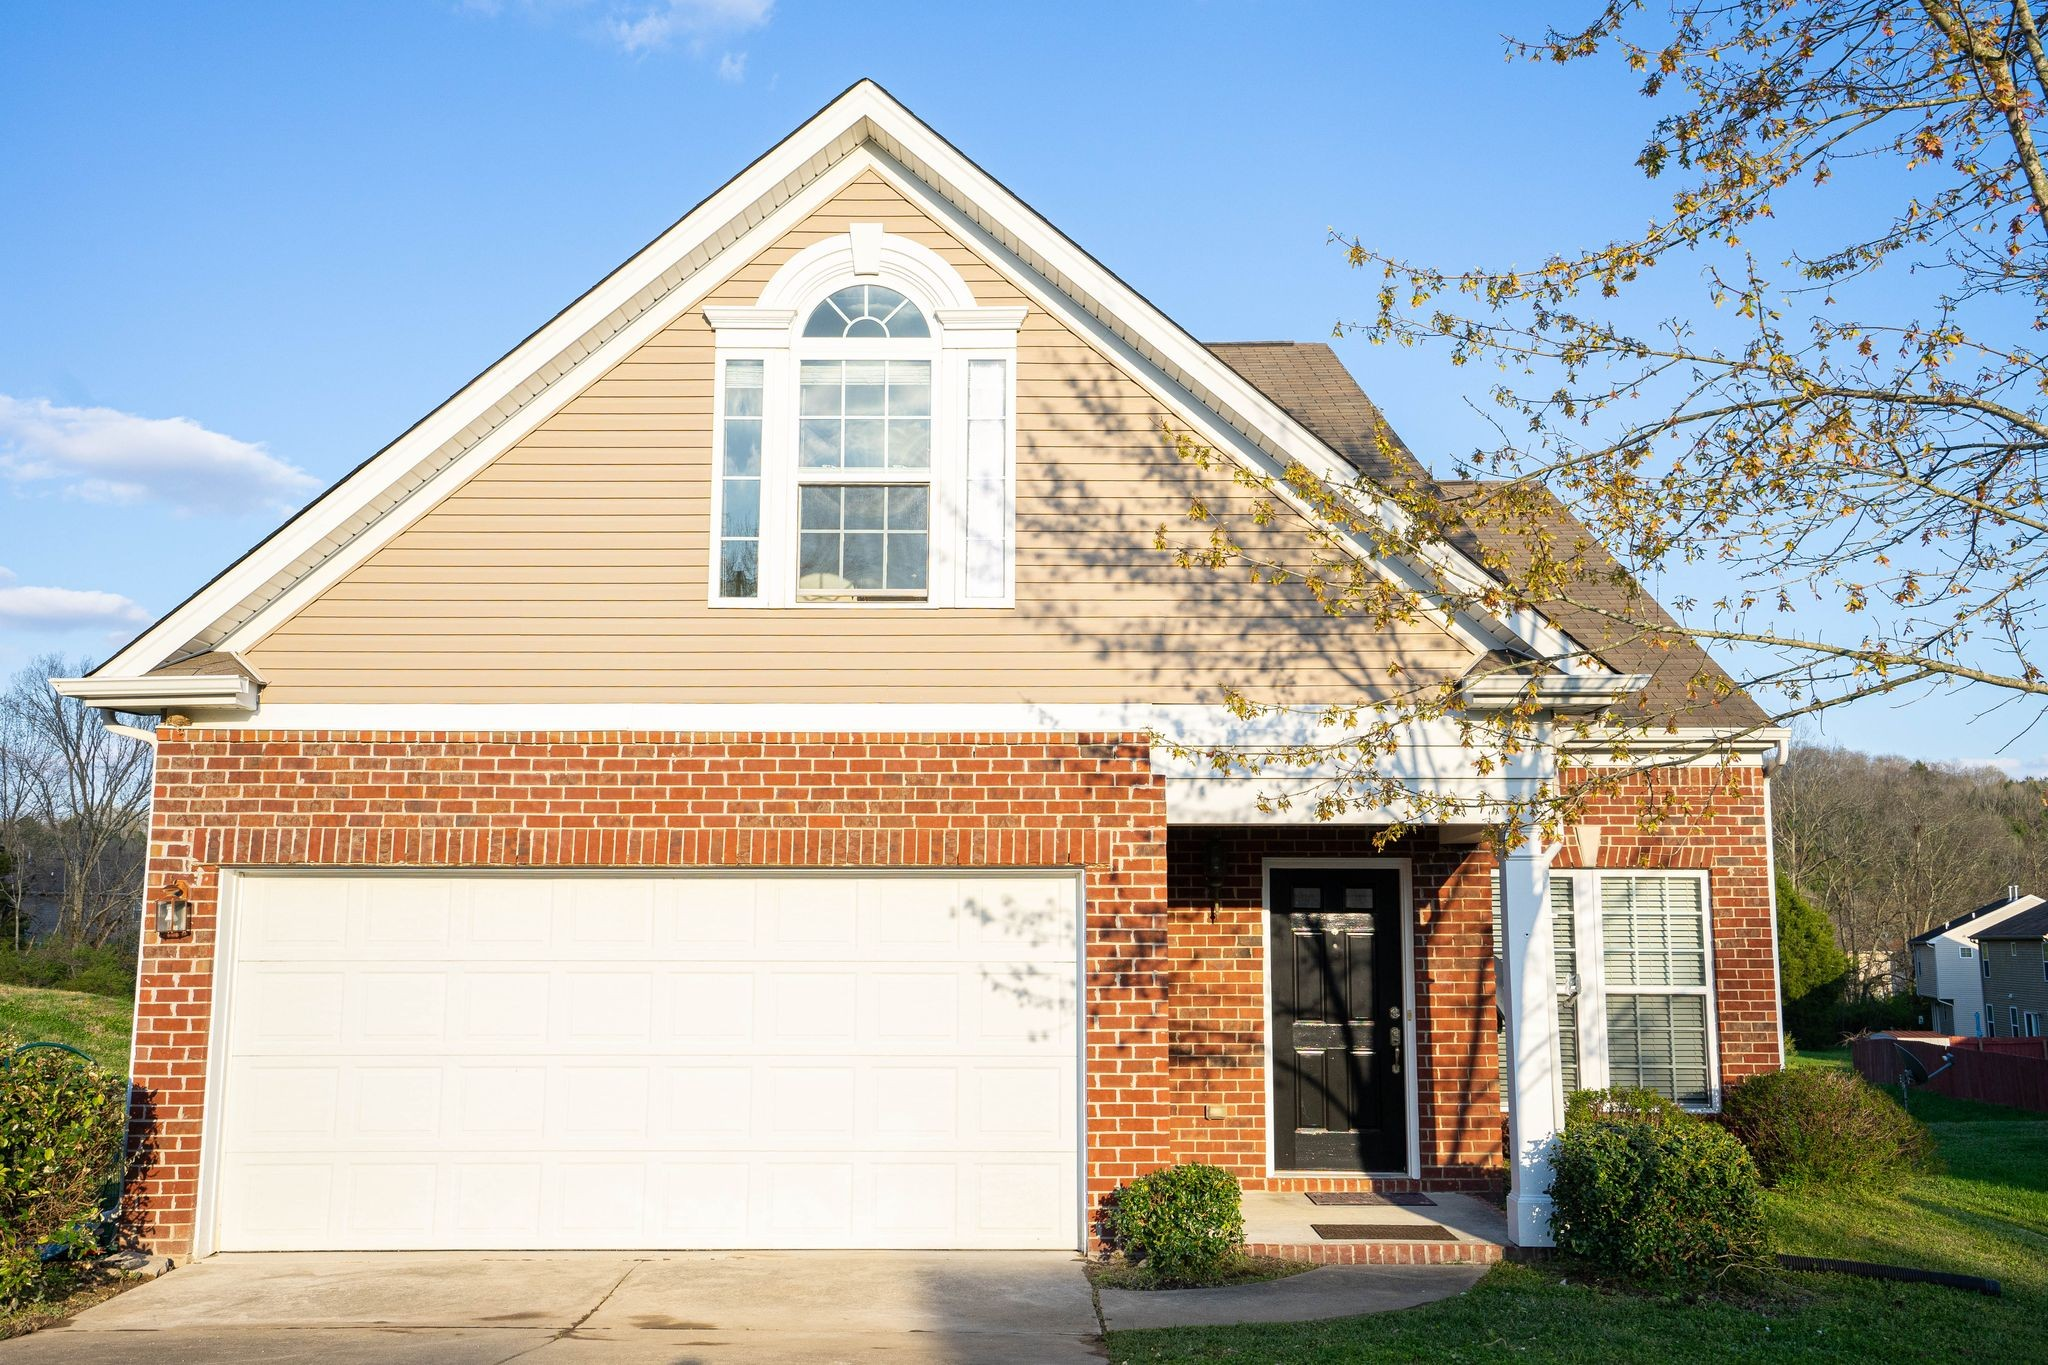 5317 Ryan Allen Cir Property Photo - Whites Creek, TN real estate listing